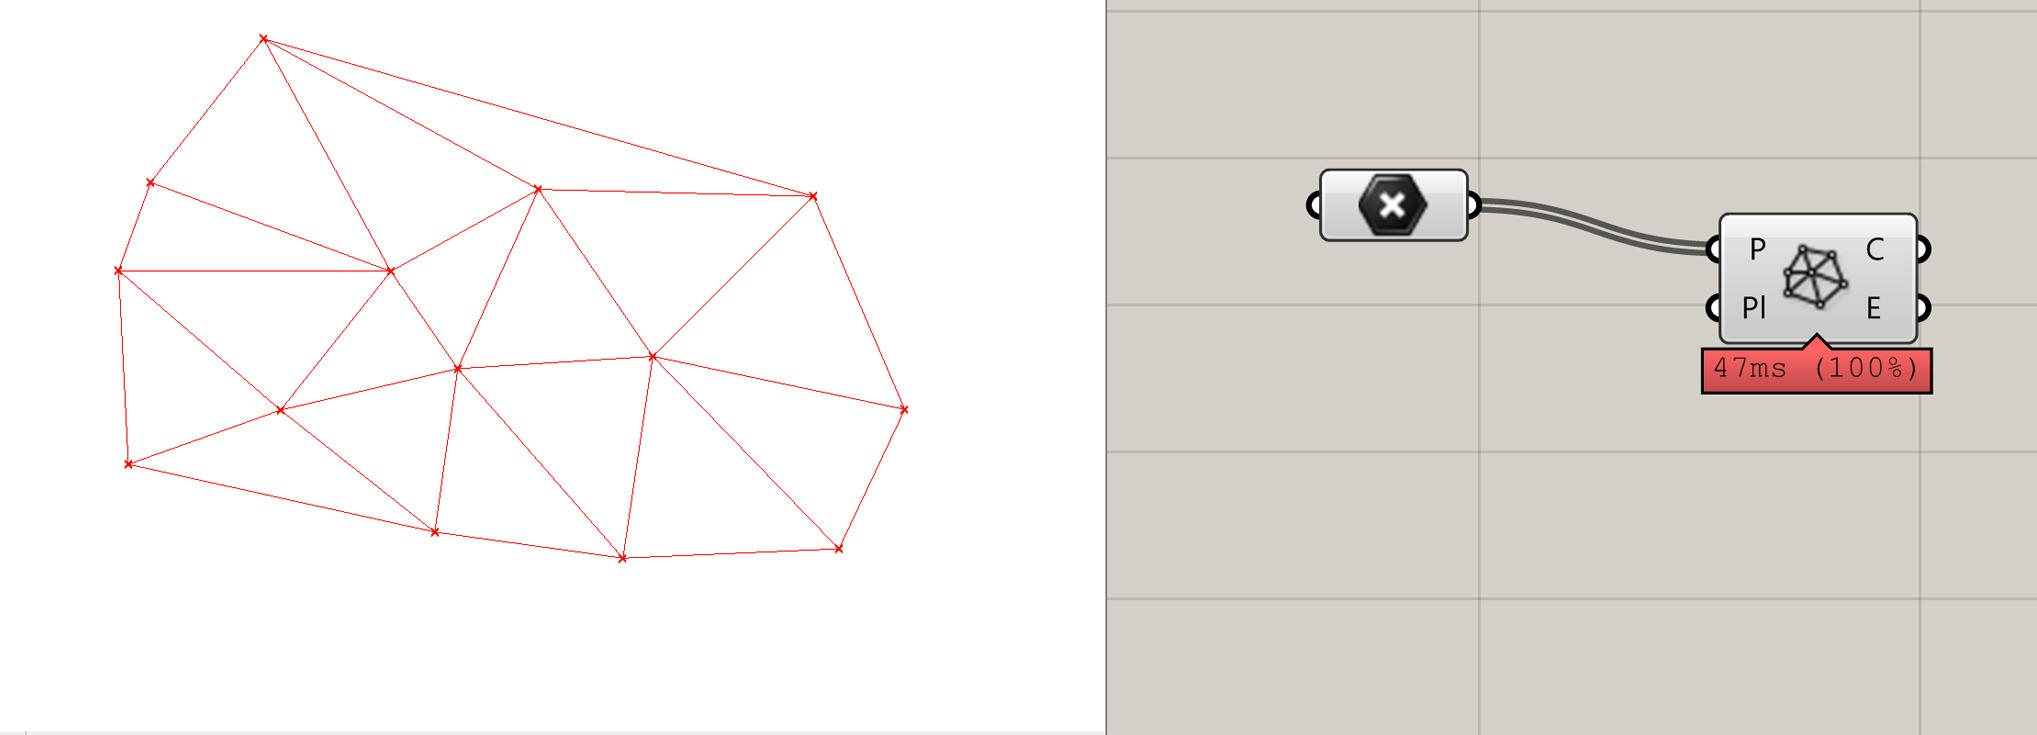 via: http://www.grasshopper3d.com/forum/topics/delaunay-triangulation?commentId=2985220%3AComment%3A454986